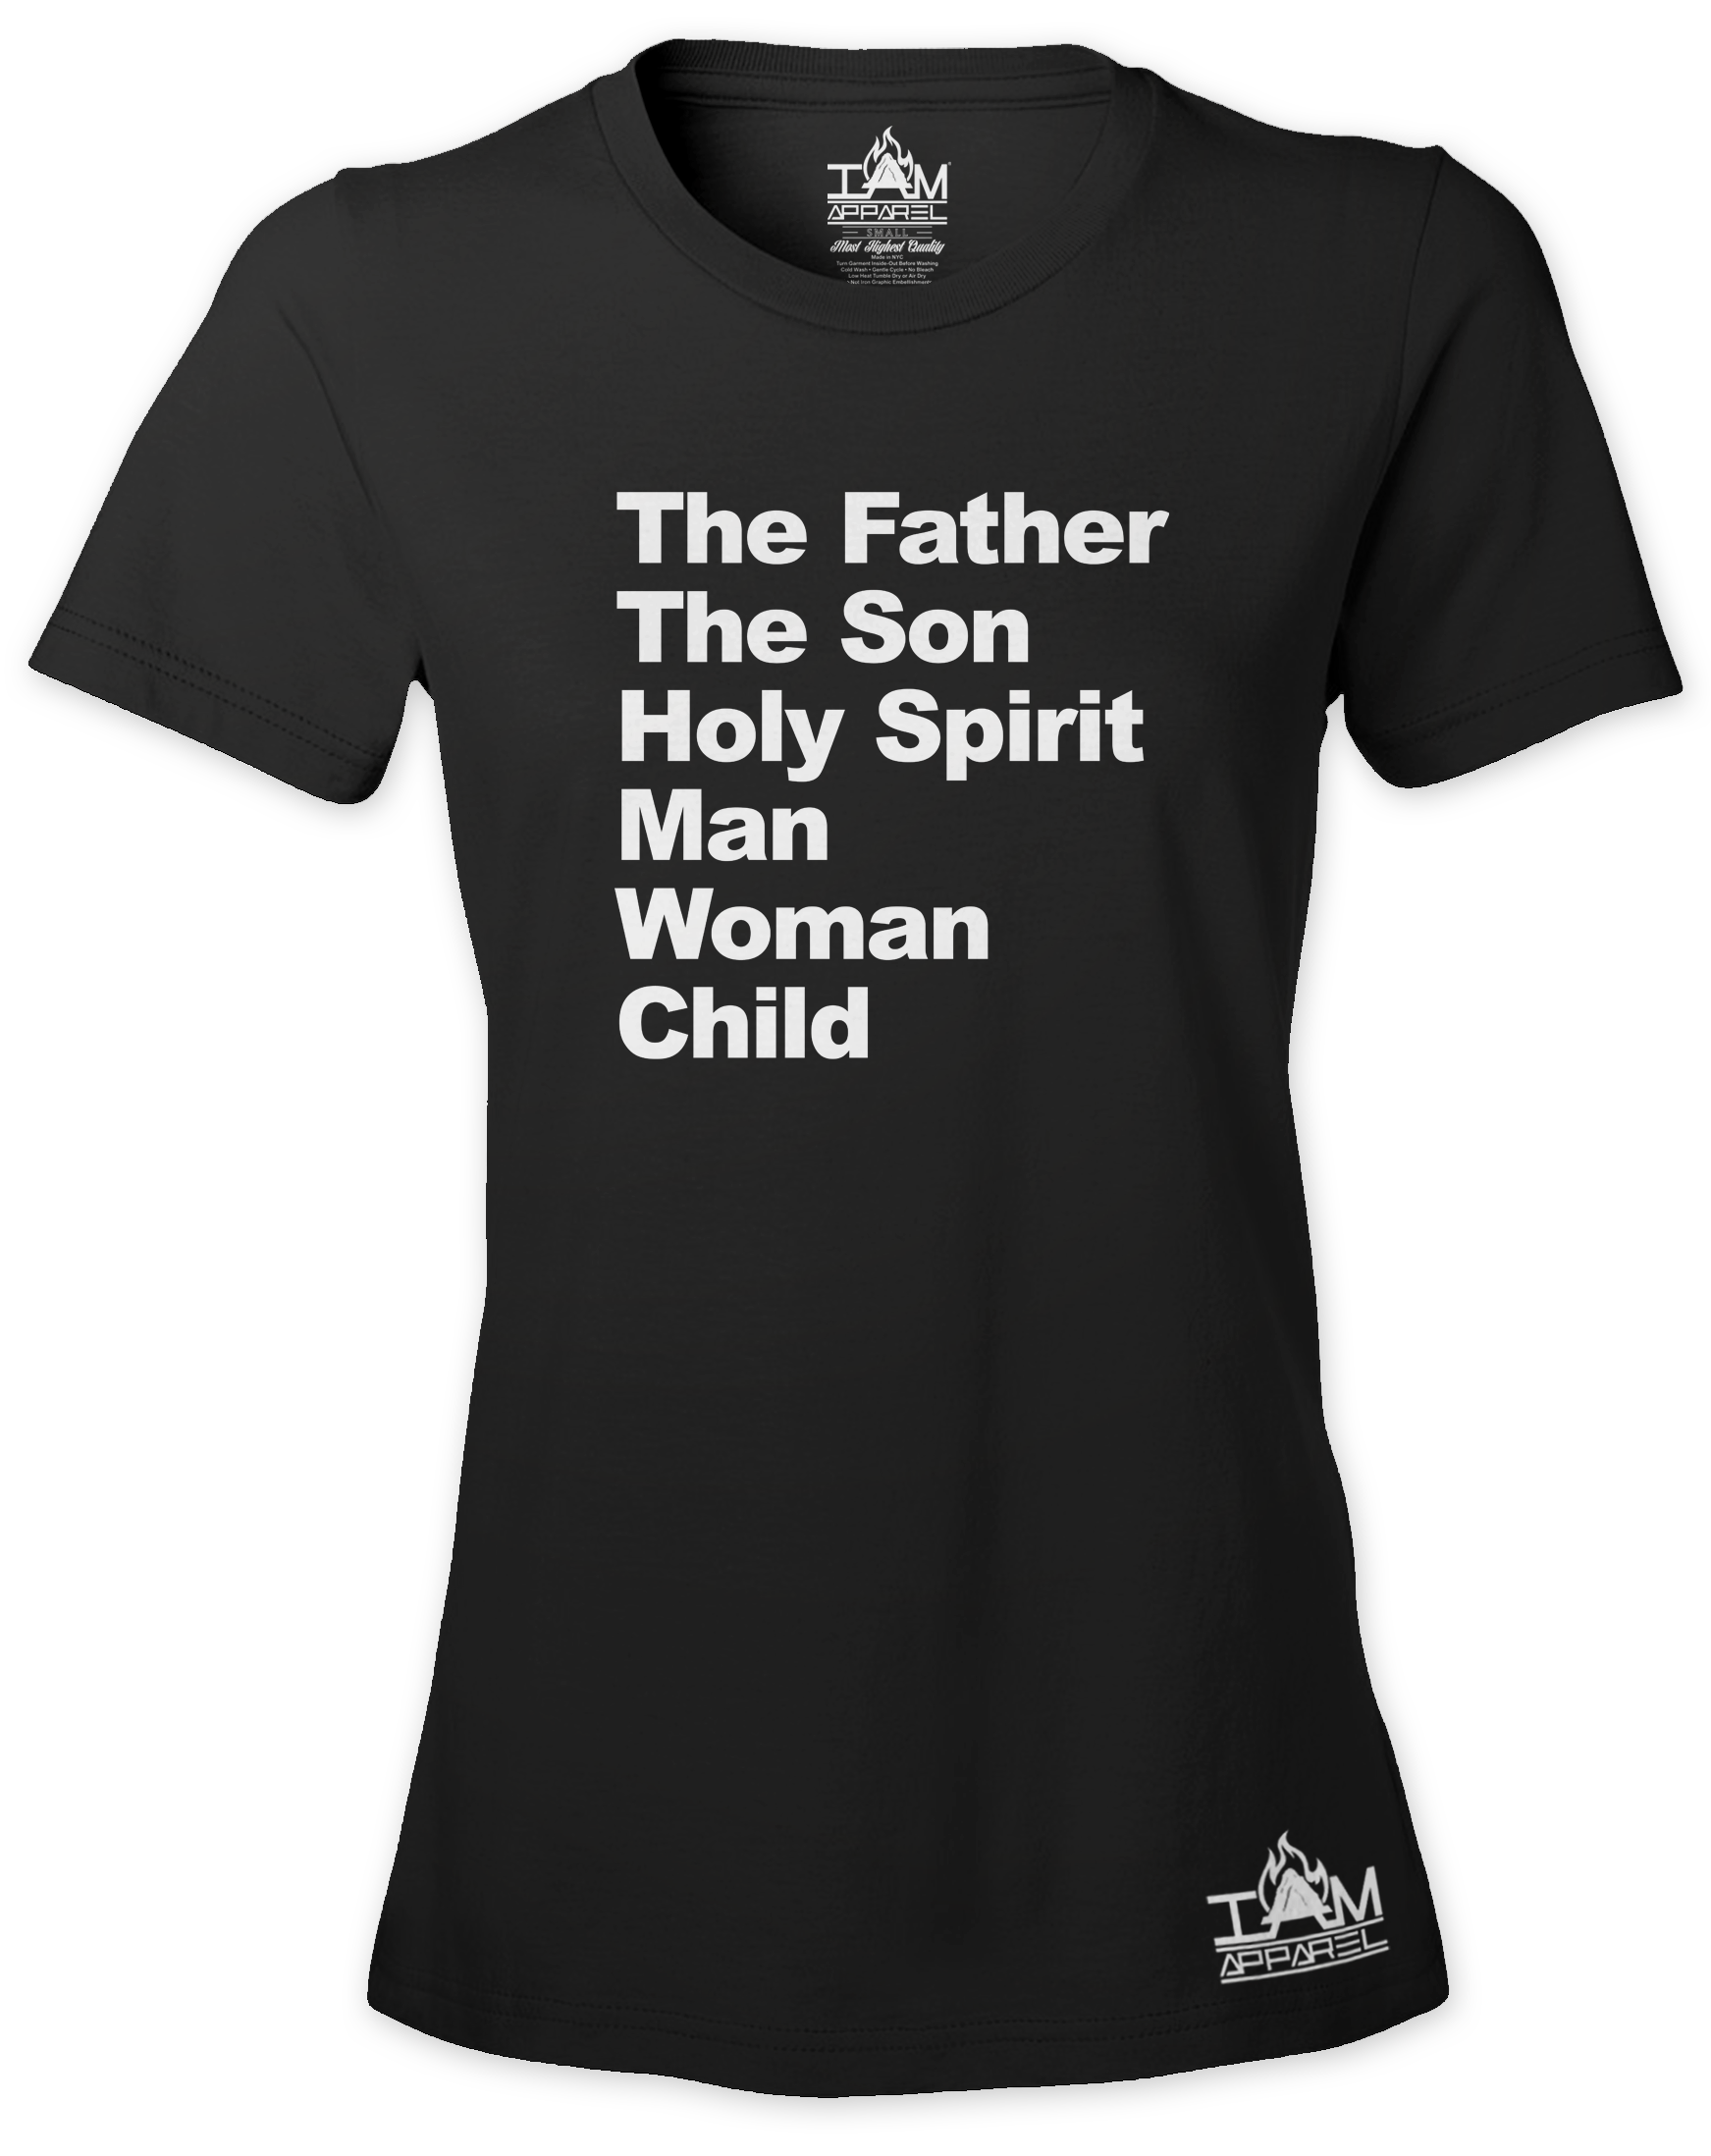 Women's Image of TMH Text Short Sleeved T-shirt